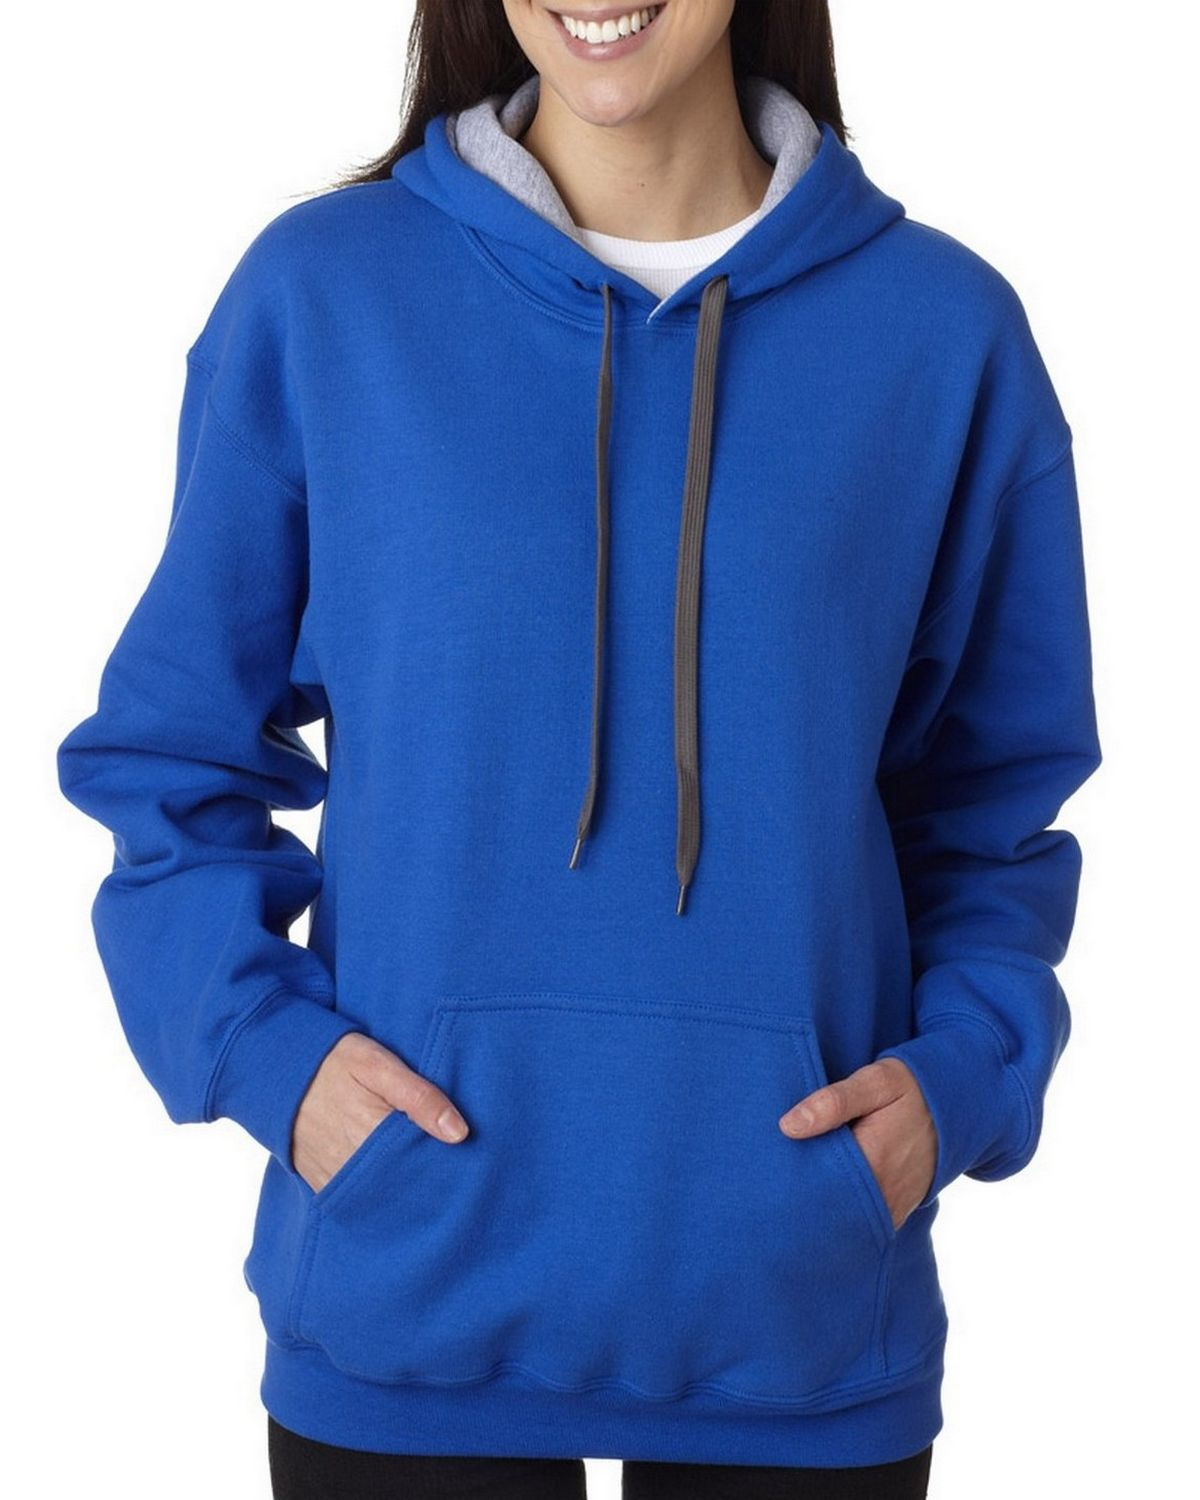 Gildan 185C00 Adult Heavy Blend Hooded Sweatshirt - Royal/Sport/Grey - 3XL 185C00